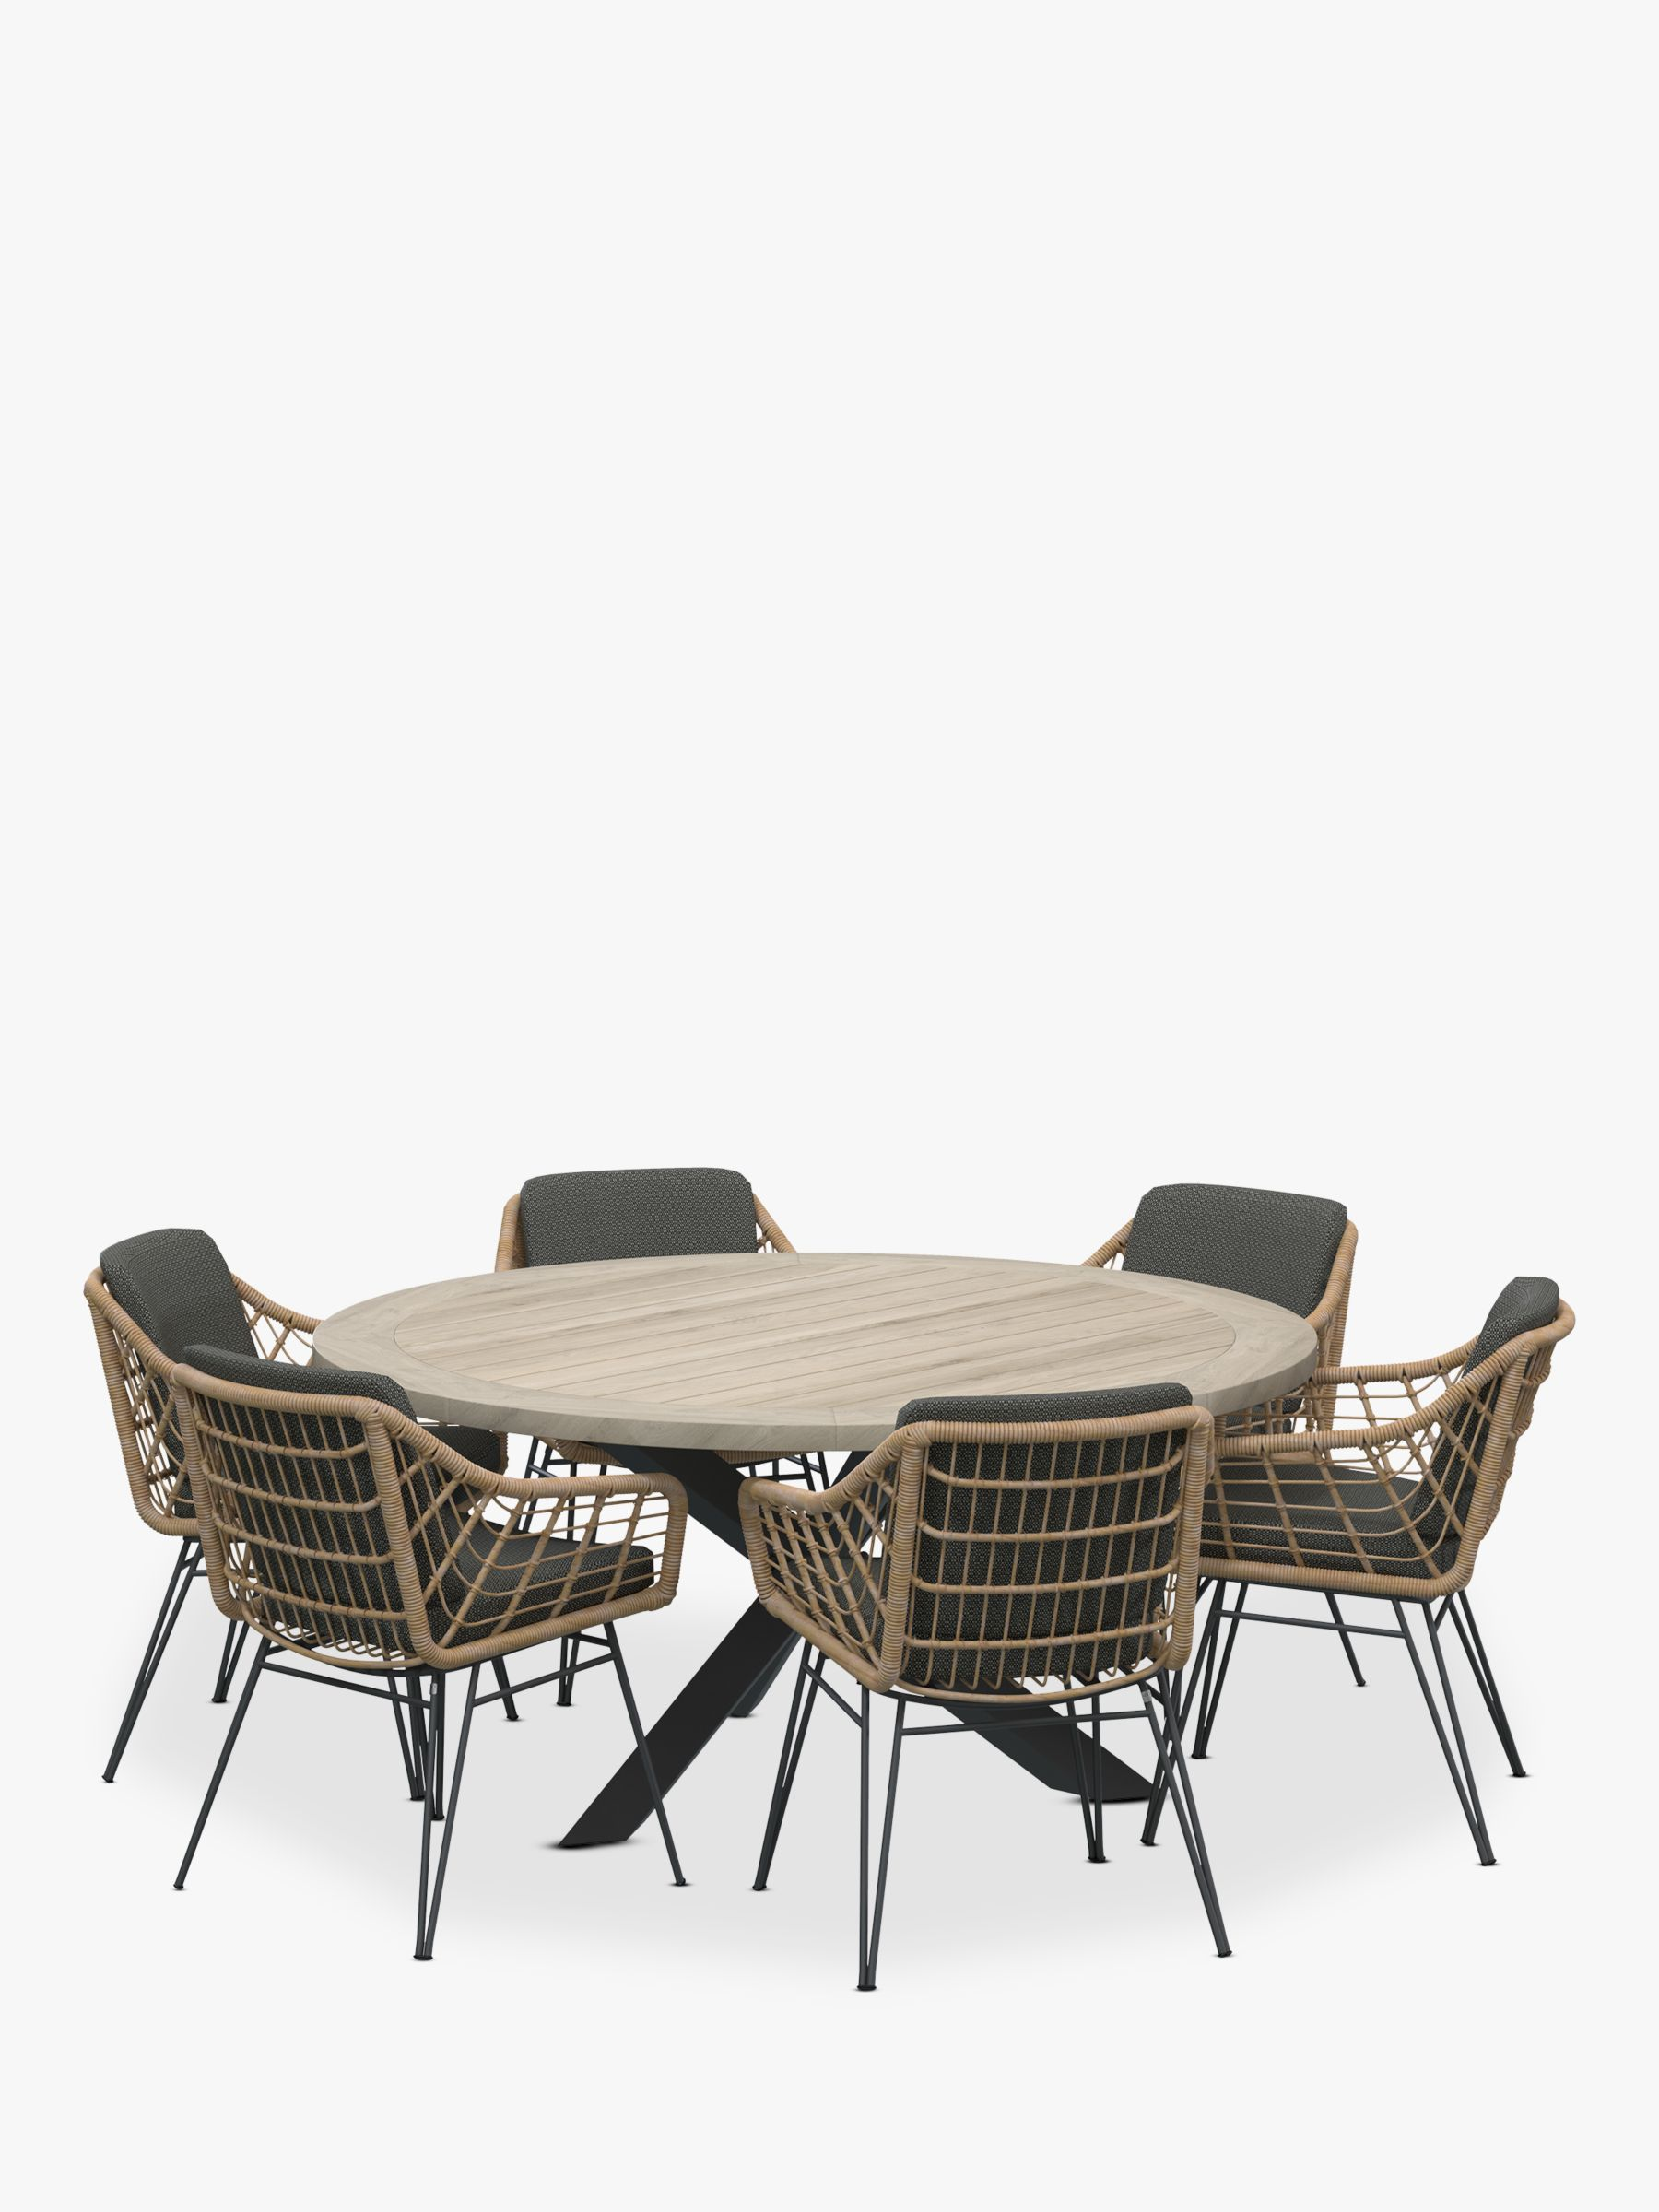 4 Seasons Outdoor Cottage 6-Seater Round Garden Dining Table & Chairs Set, FSC-Certified (Teak Wood), Natural